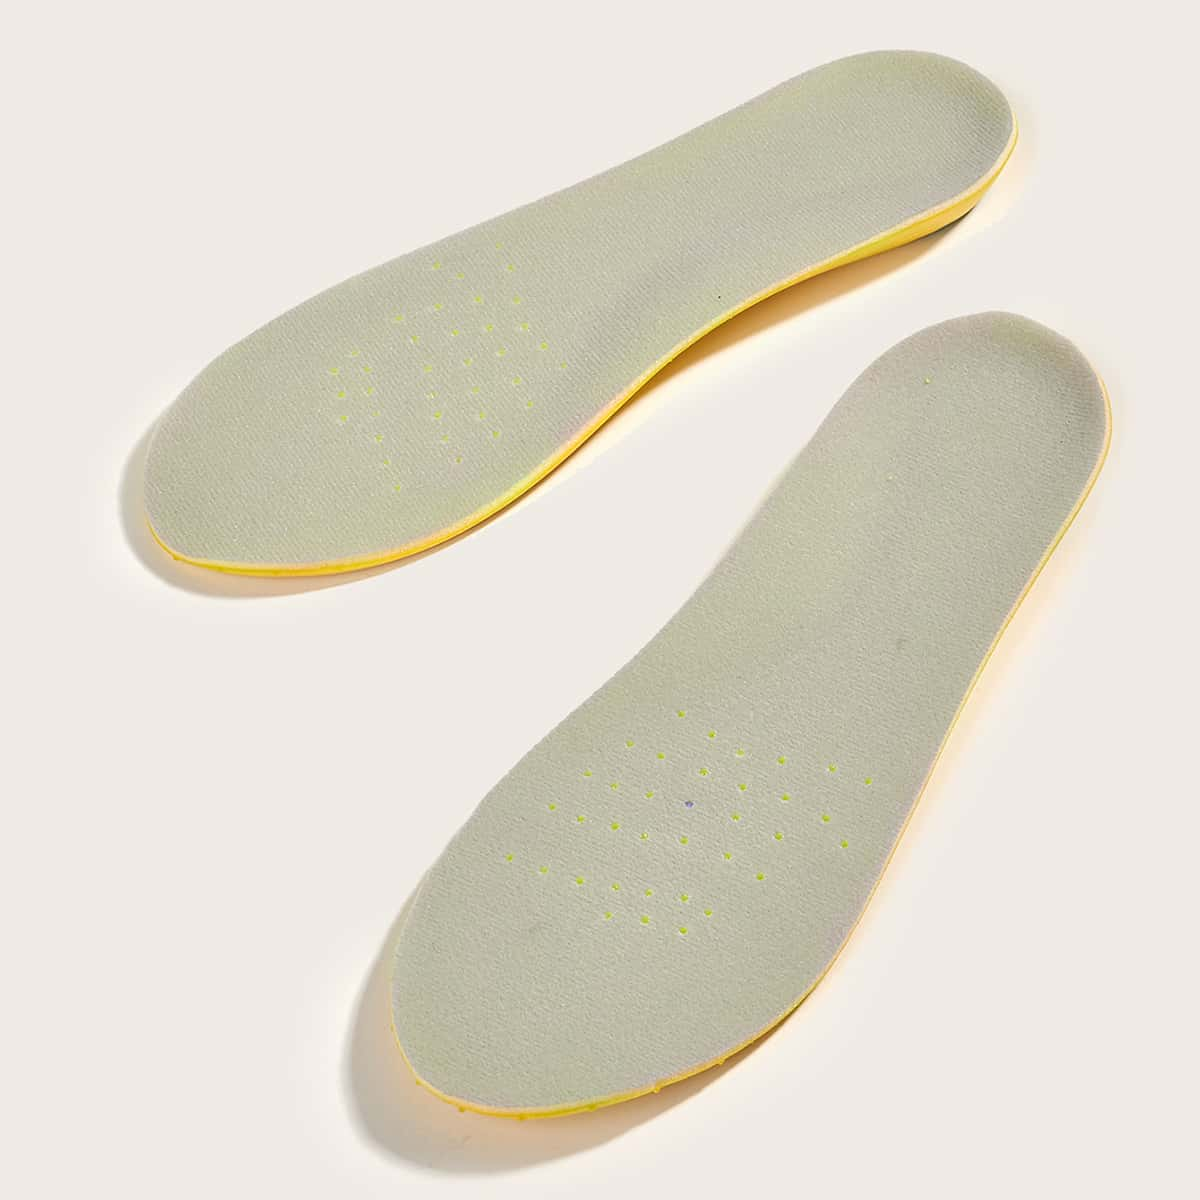 1pair Shock-absorbing Soft Insoles